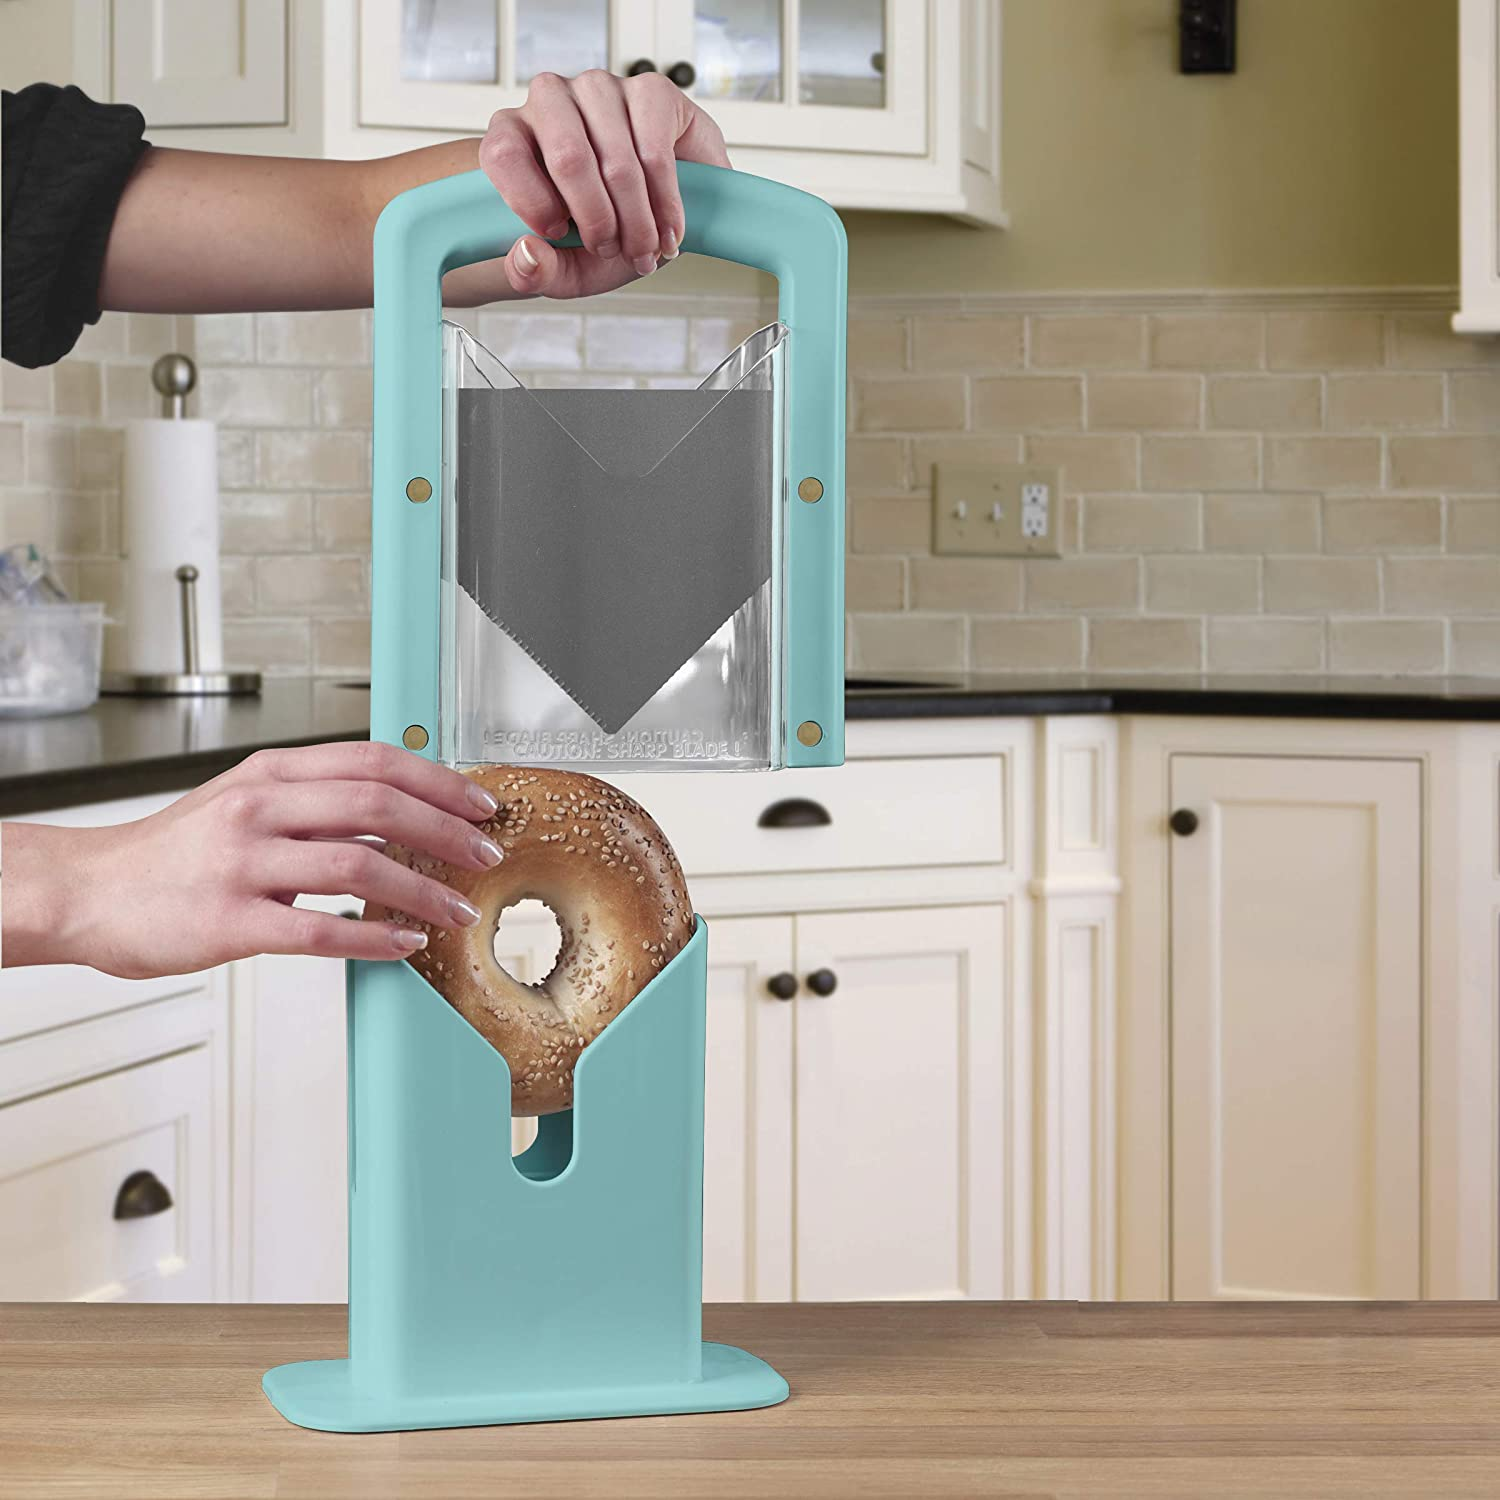 The Original Bagel Guillotine Universal Slicer